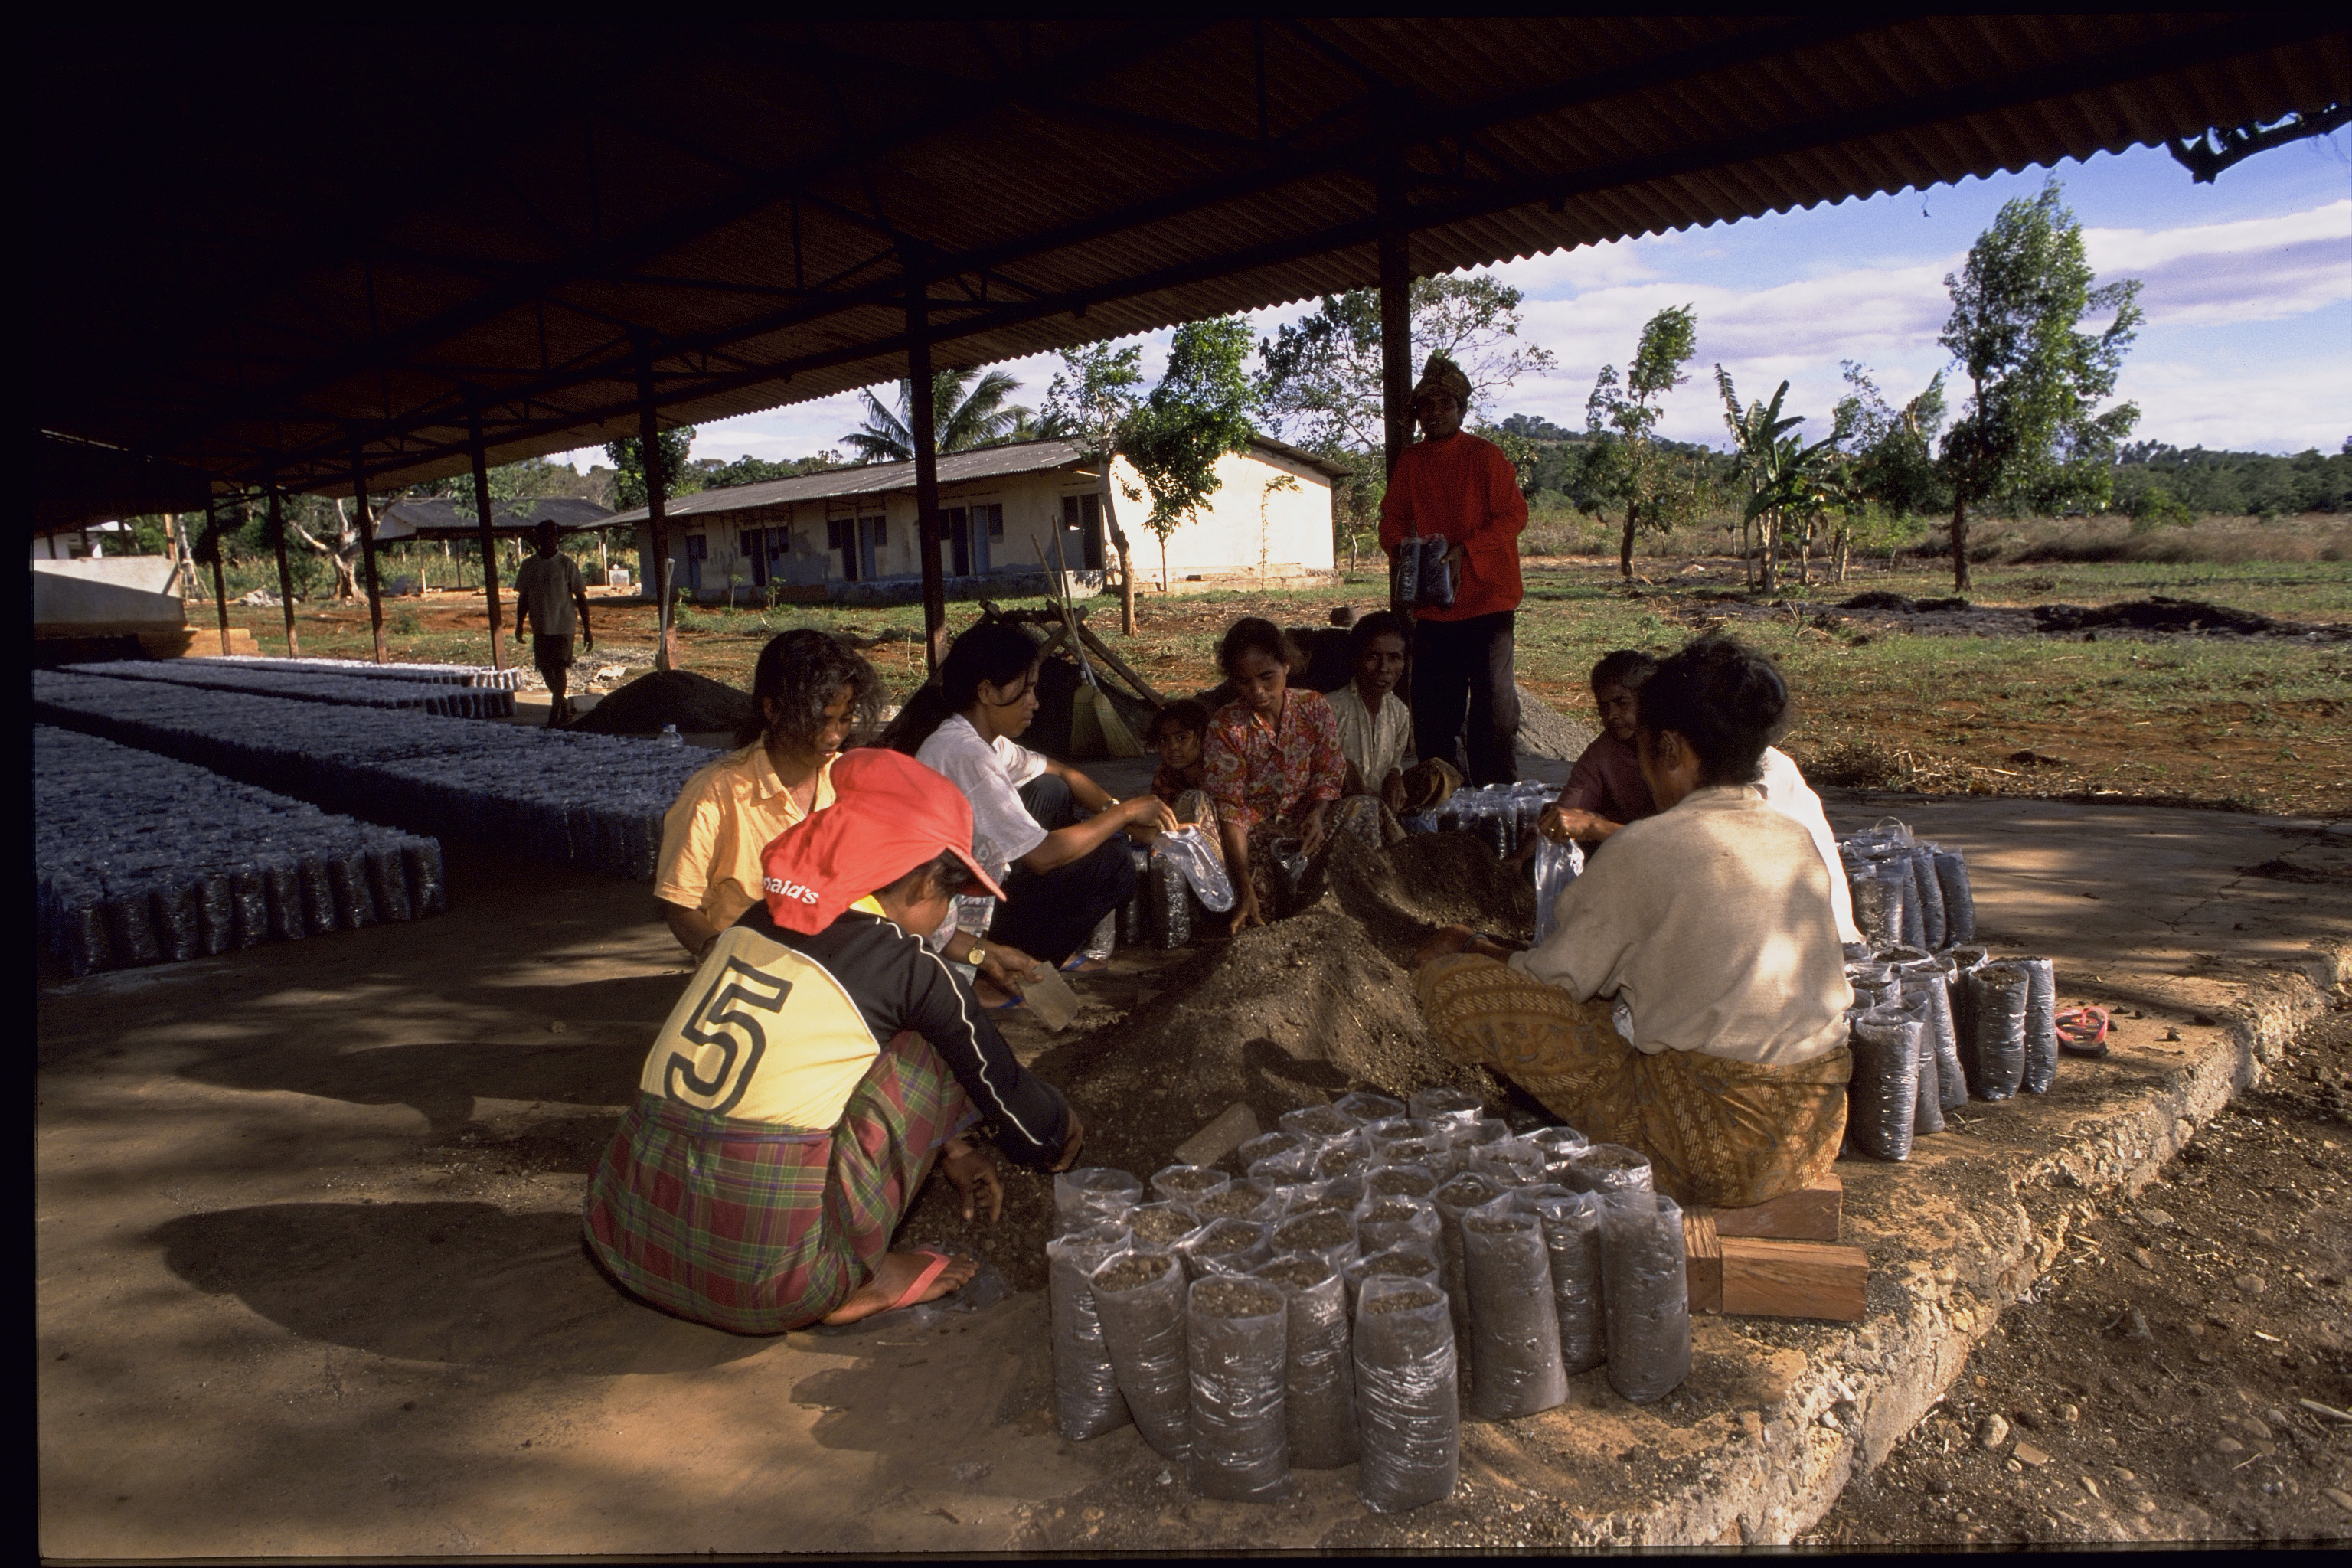 Villagers prepare the mulberry seedlings in the newly built sheds. Photo by David Haigh for AusAID